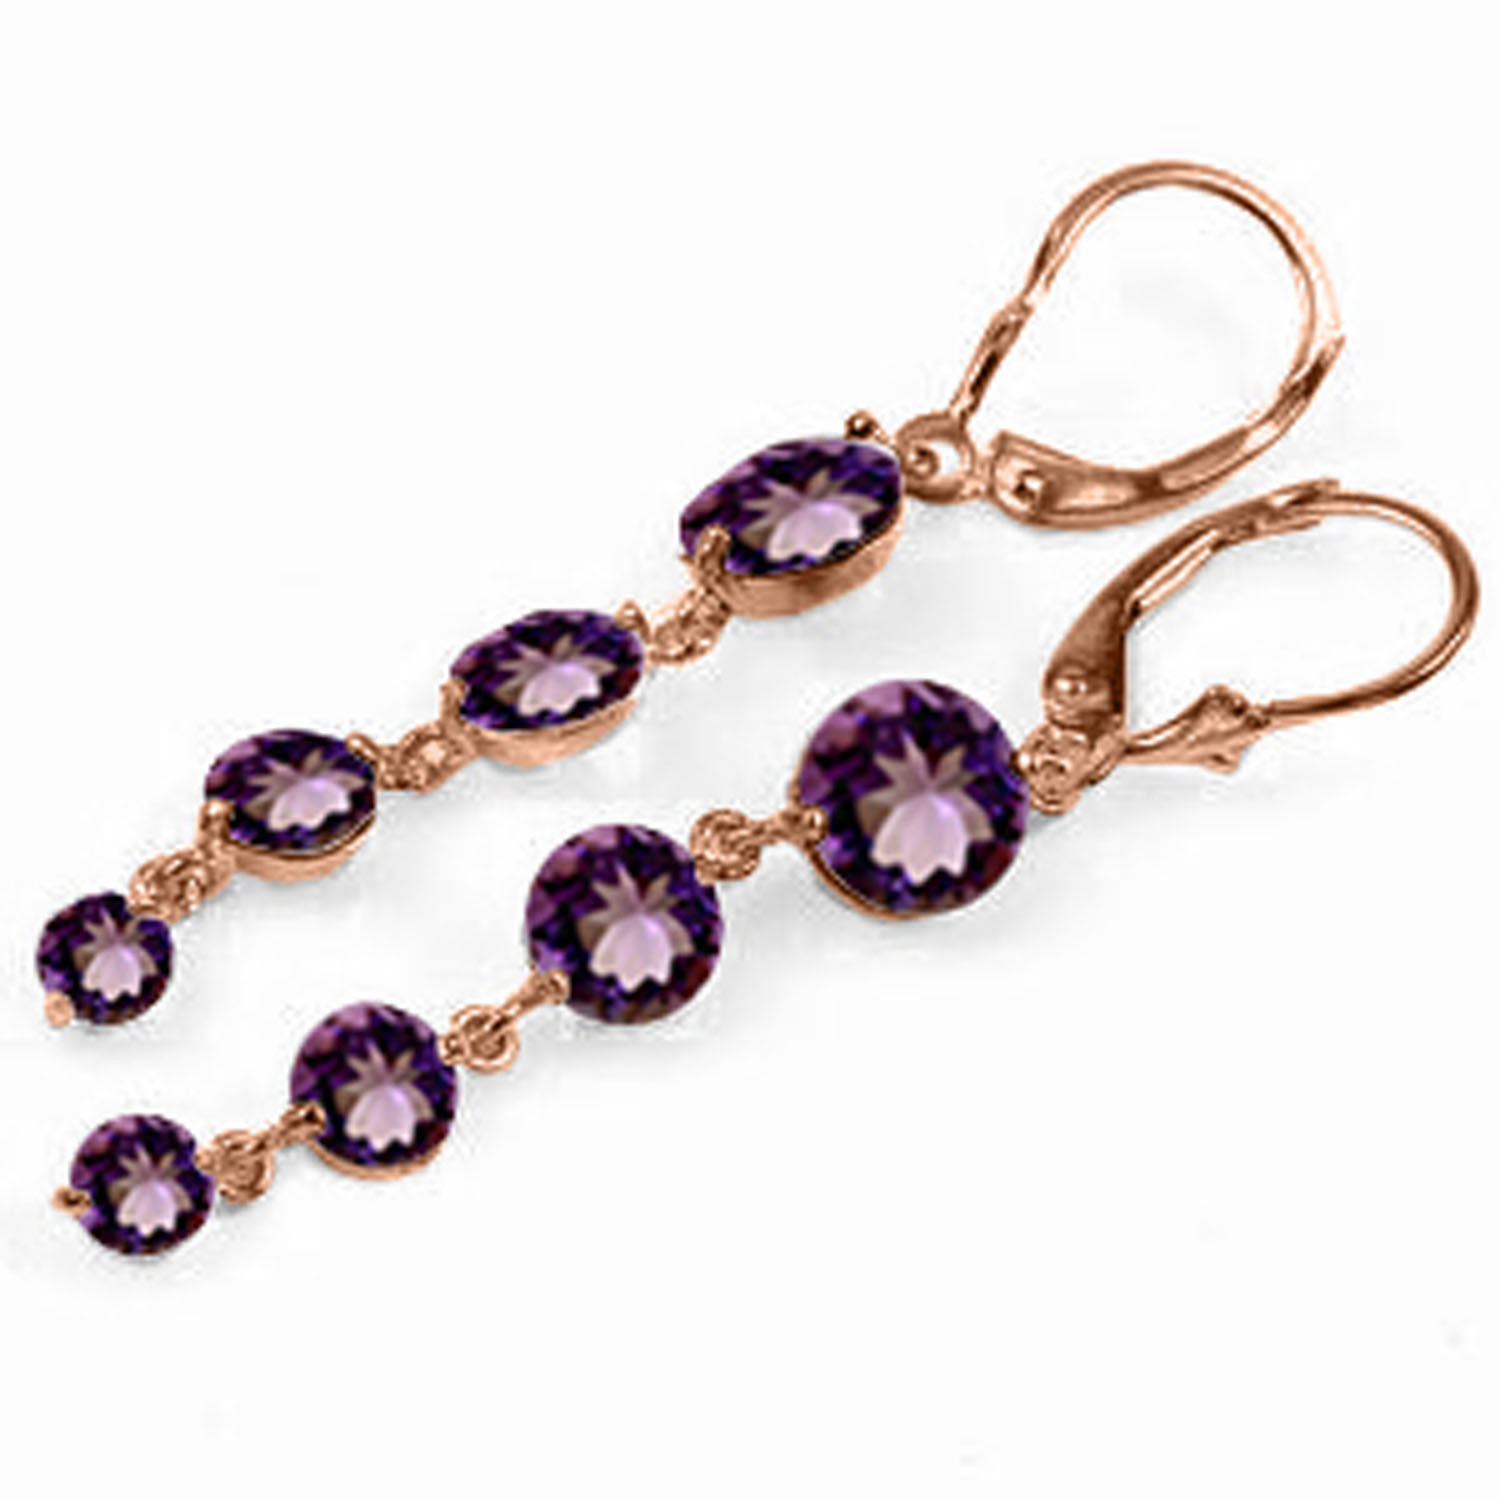 Primary image for 14K Solid Rose Gold Womens Cute Chandelier Fashion Earrings w/ Natural Amethysts